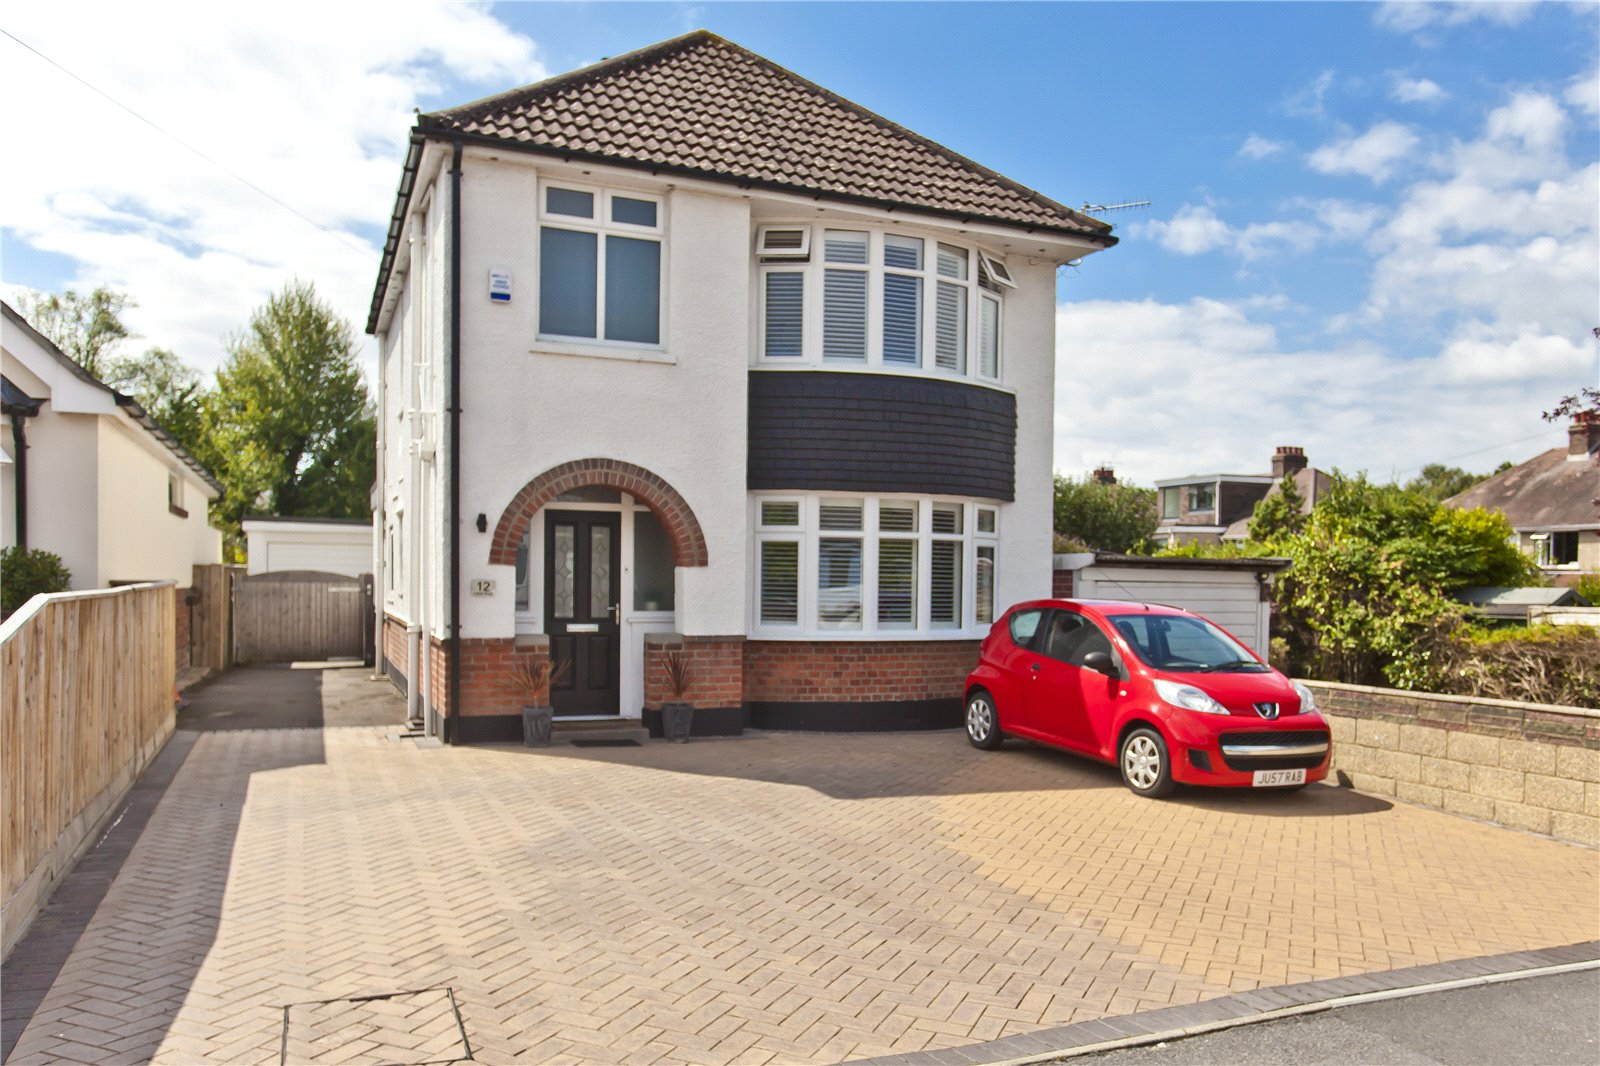 3 bed house for sale in Whitecliff - Property Image 1